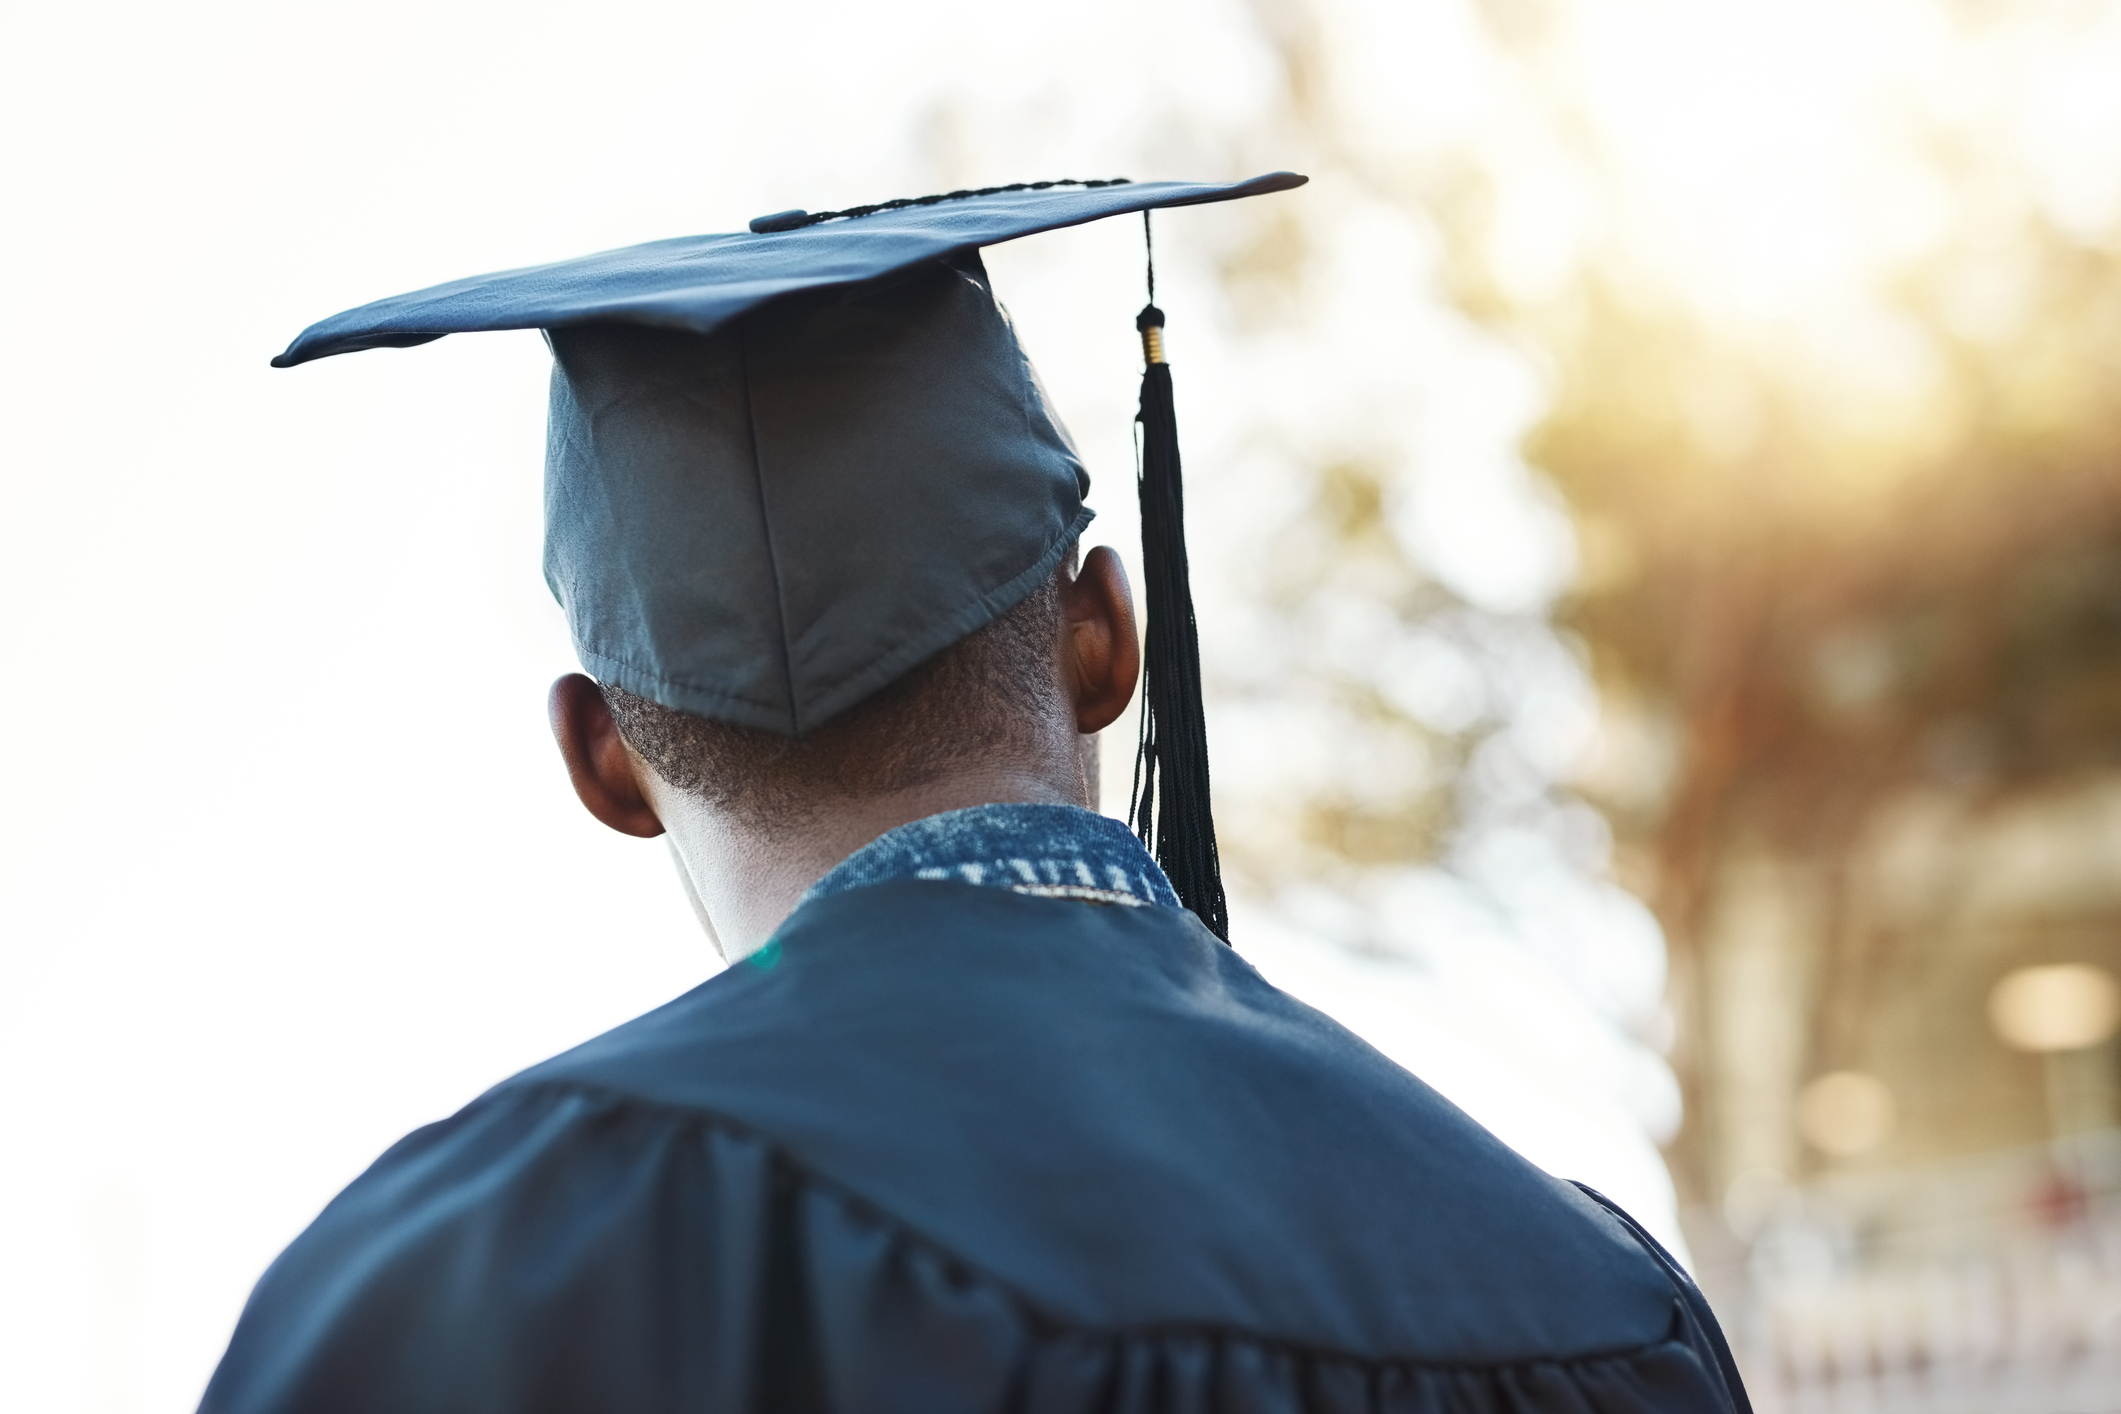 Inspired in part by the success of the approach in San Mateo County, some California lawmakers want to bring college classes to juvenile detention facilities around California. Photo via iStock